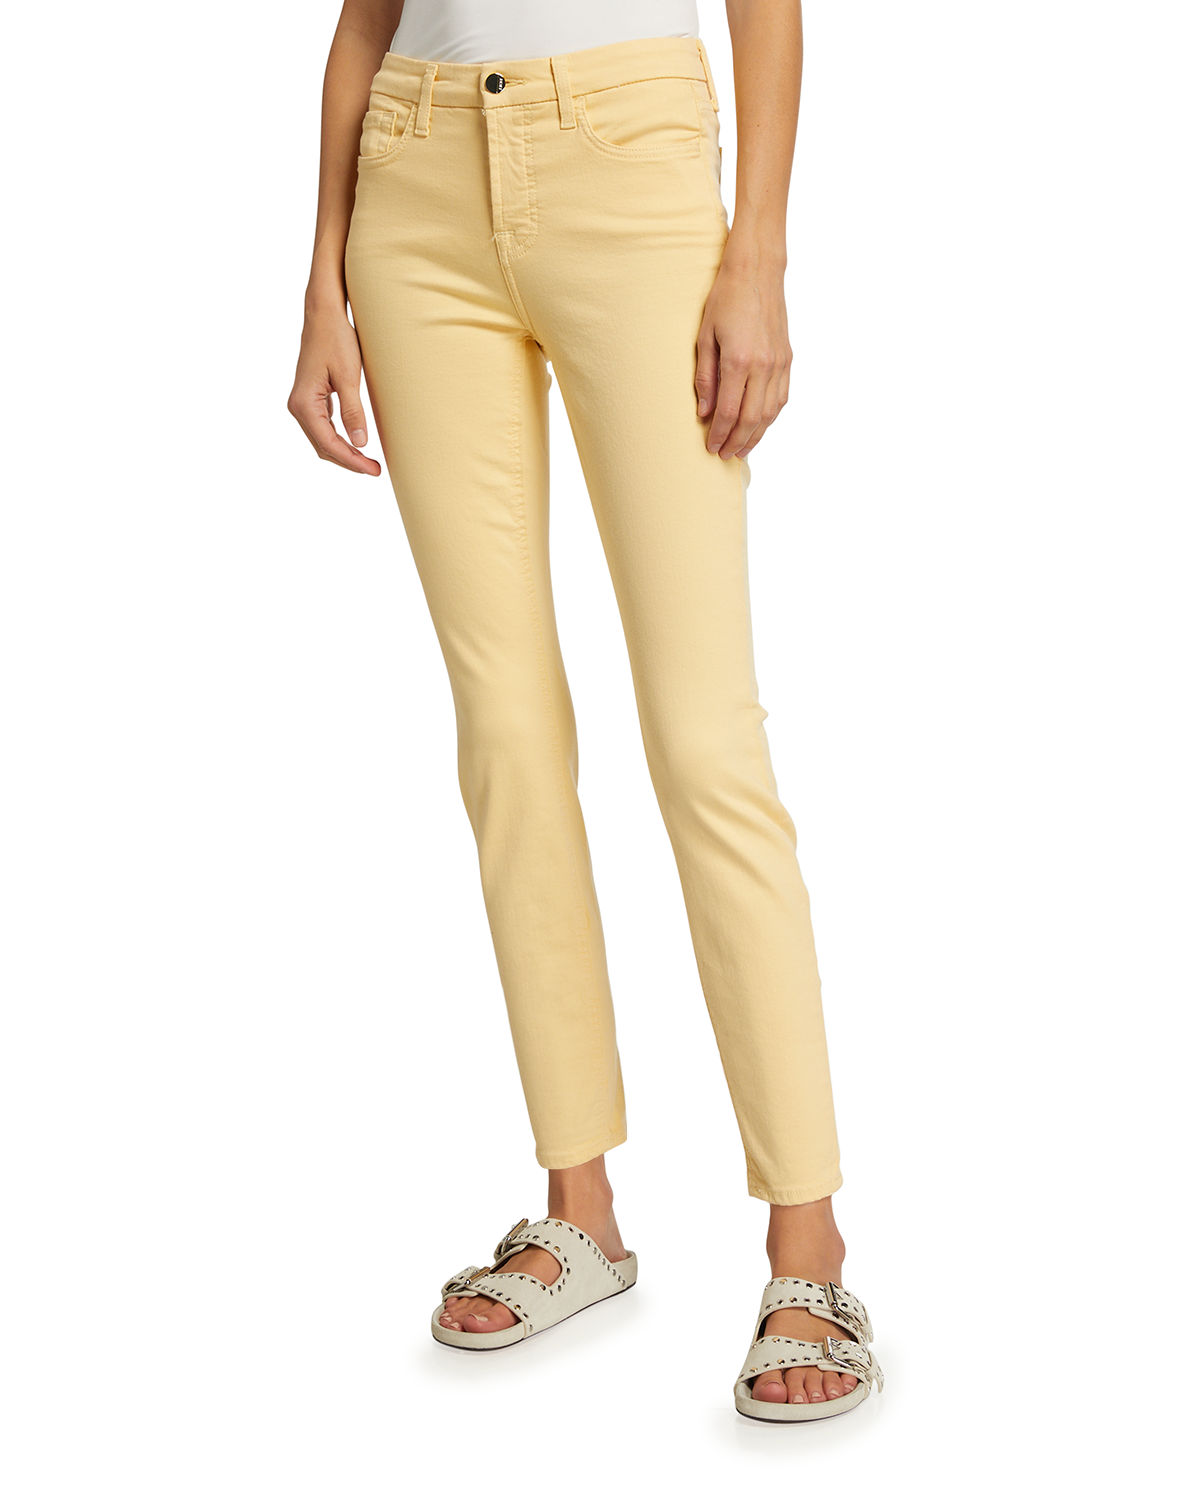 Skinny Ankle High-Rise Colored Pants